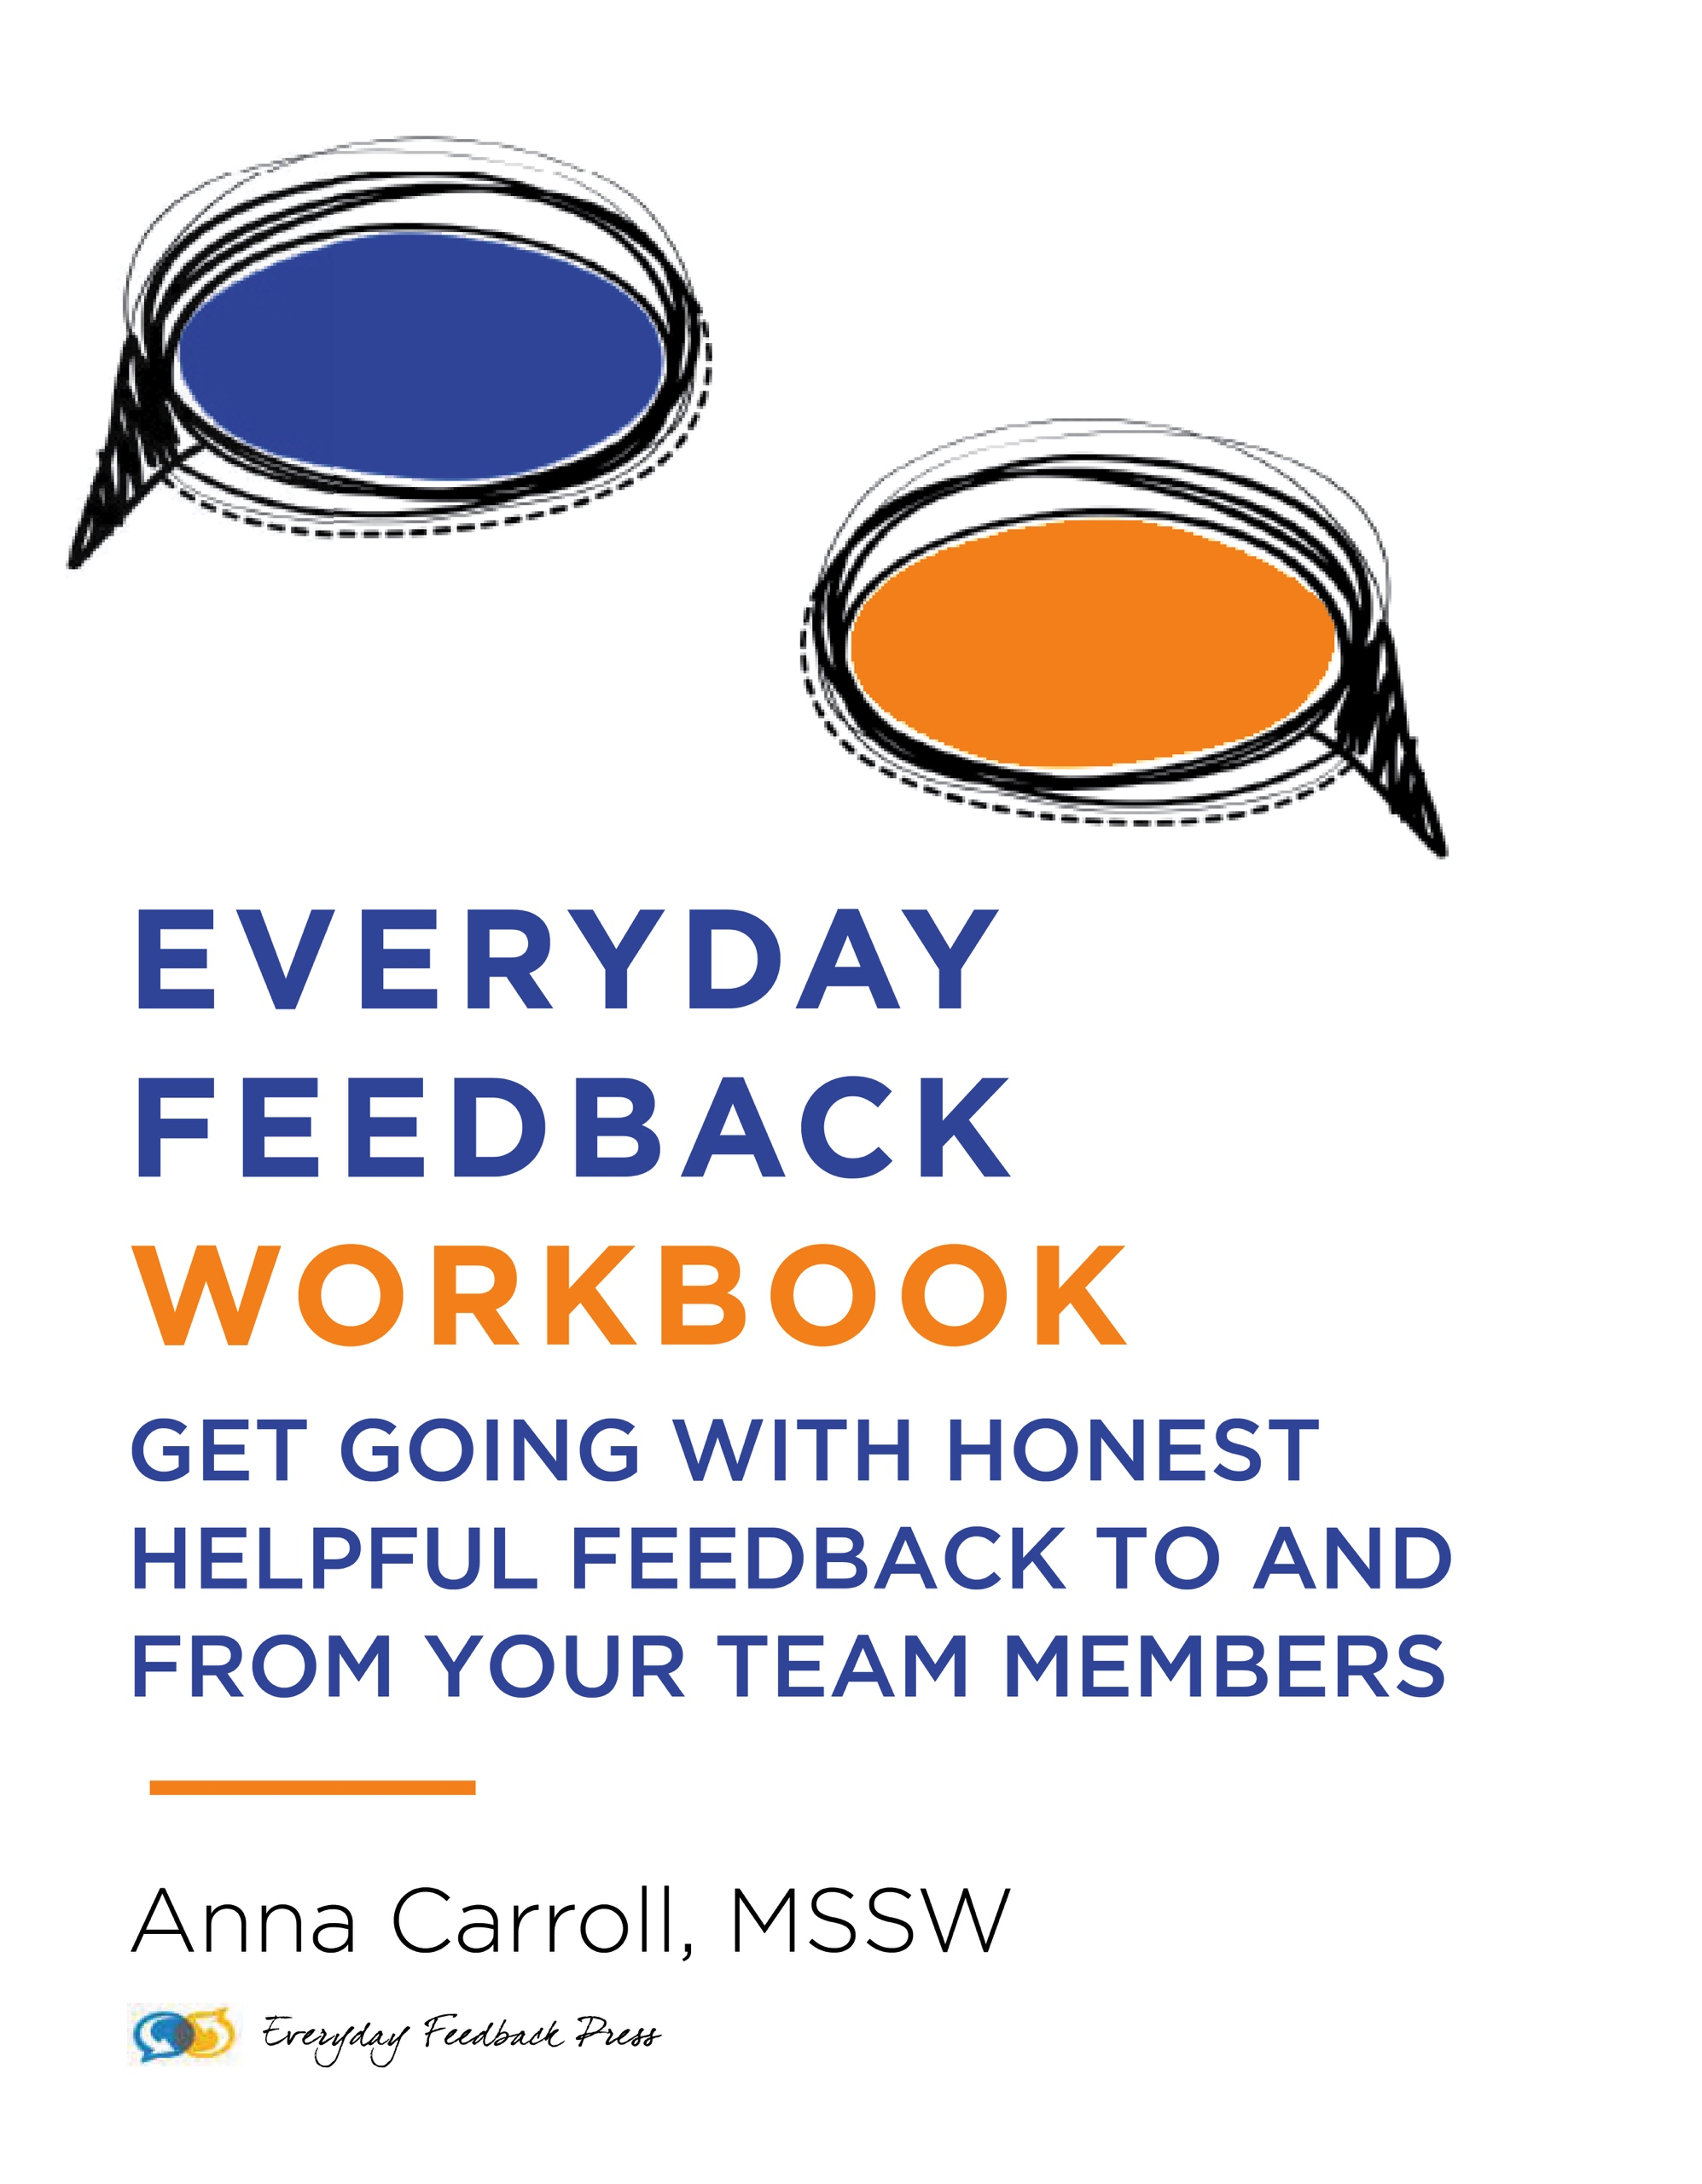 EVERYDAY-FEEDBACK-WORKBOOK-Kindle